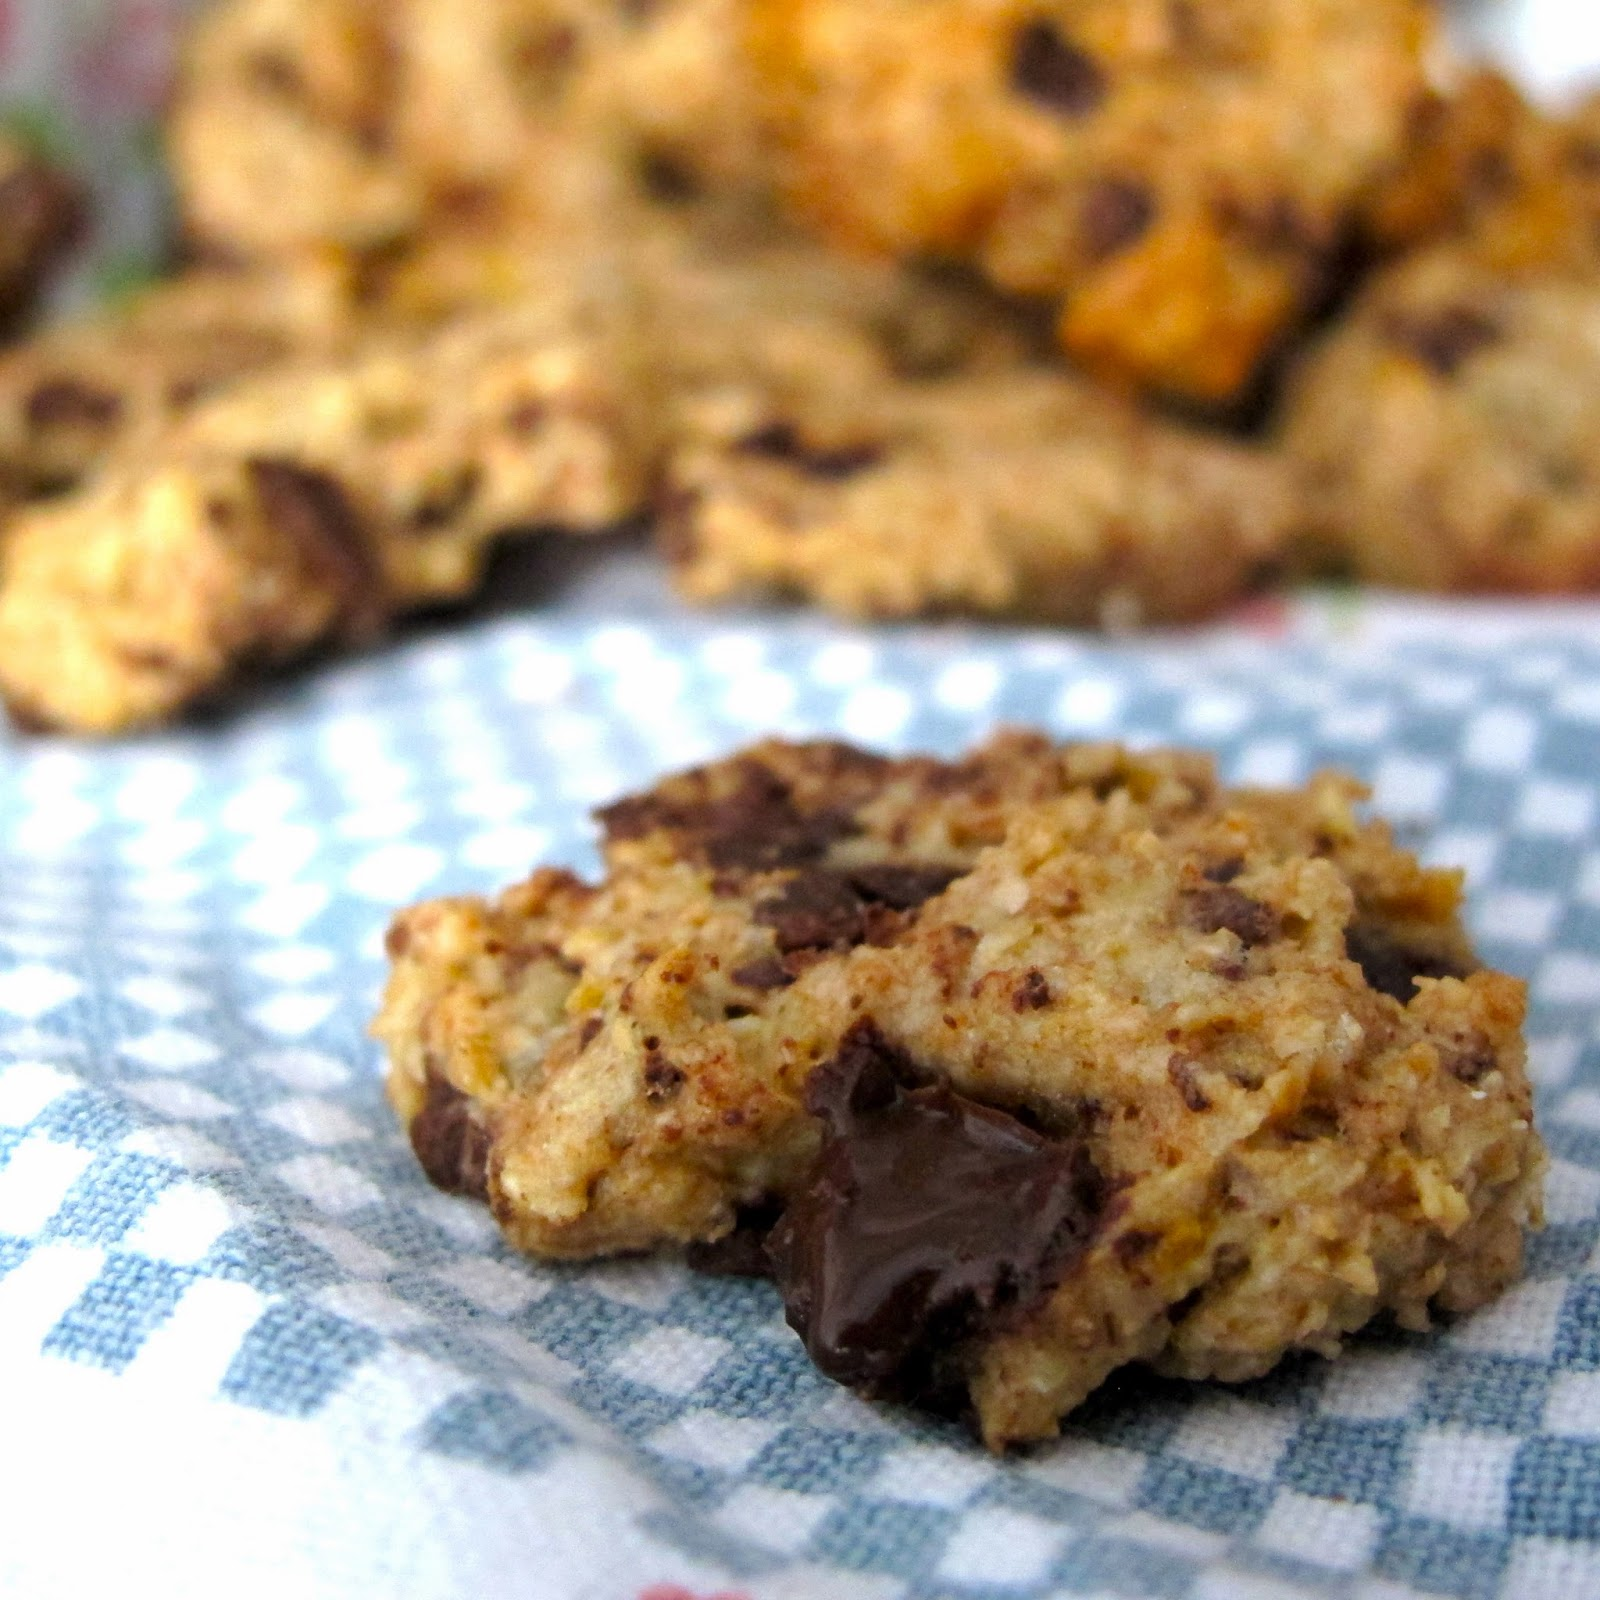 Cookies de banana e aveia com pepitas de chocolate